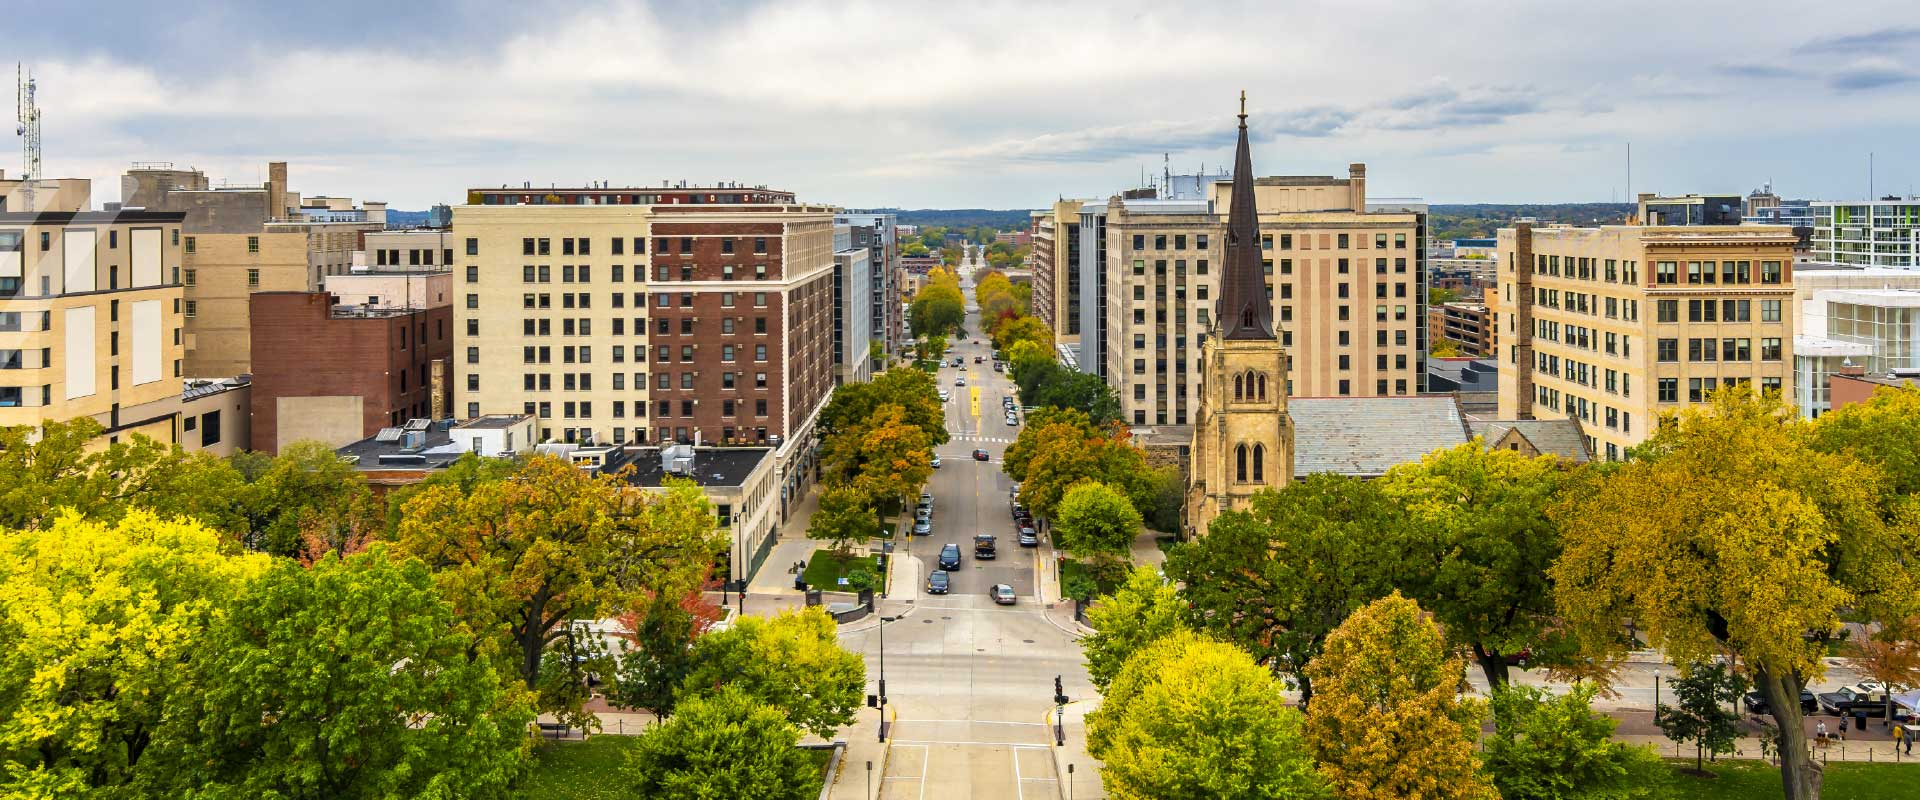 Madison, Wisconsin city scape